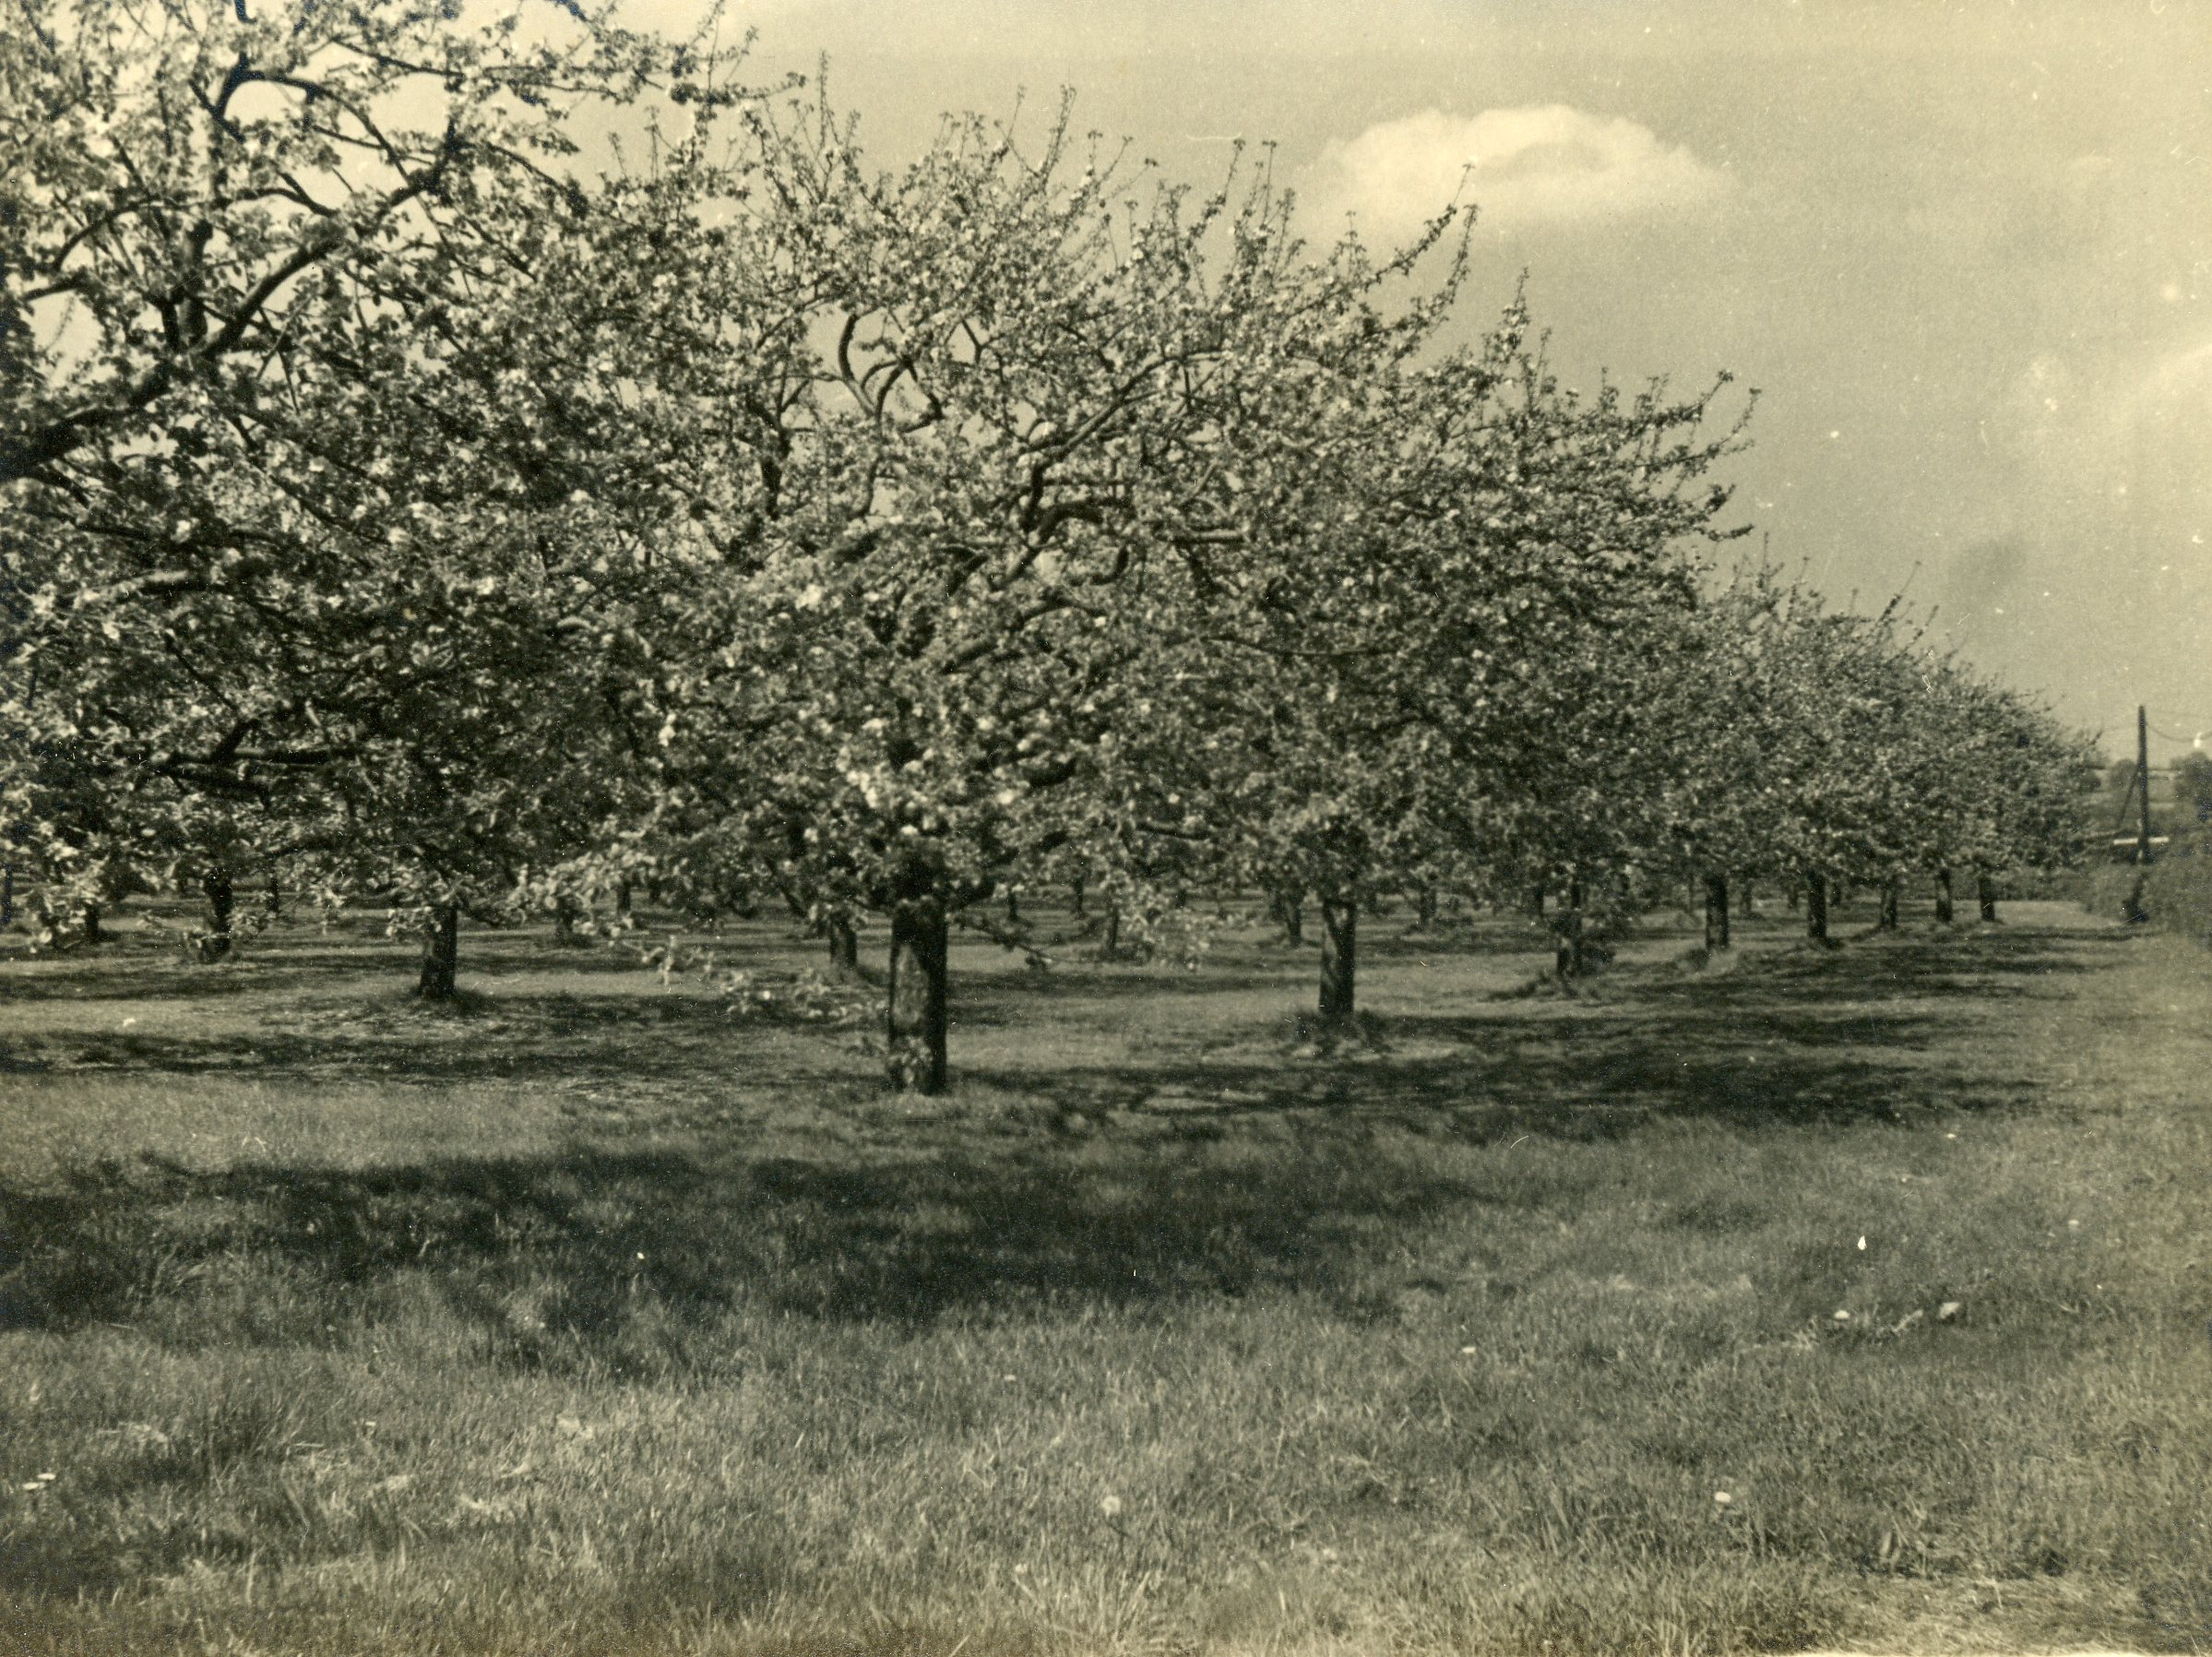 Orchard in Blossom 111.jpg